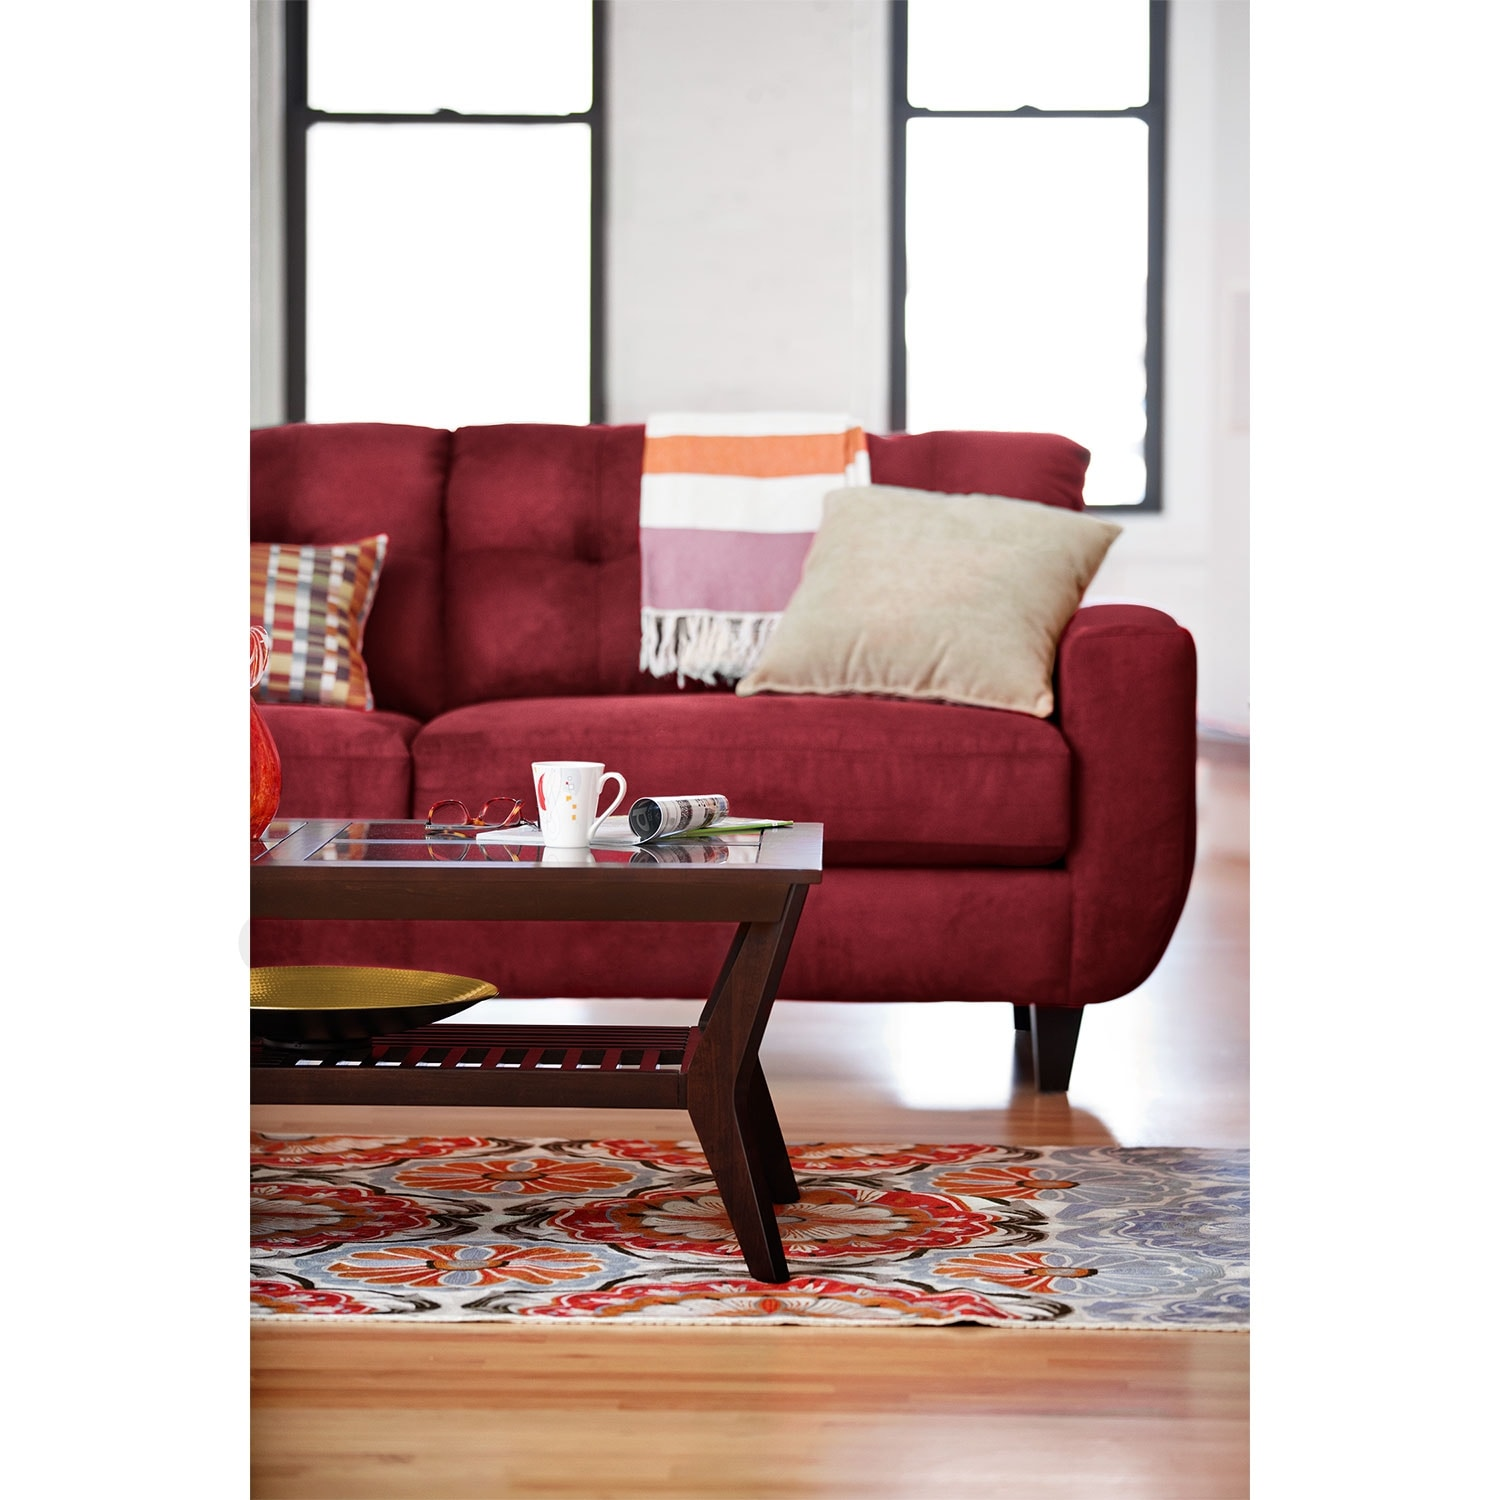 living room glass coffee table picture frame gallery wall white